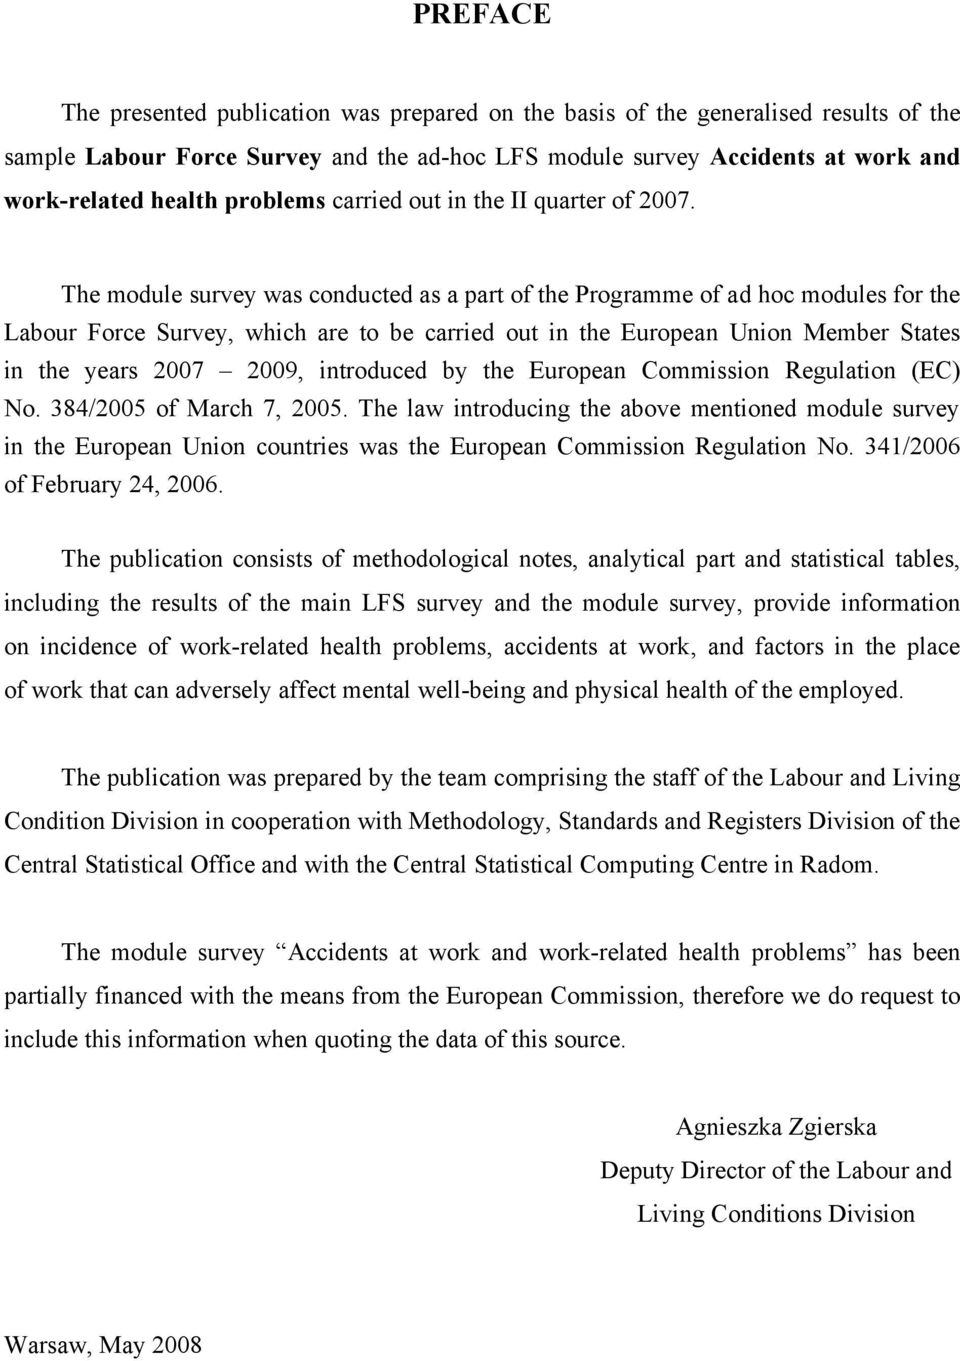 The module survey was conducted as a part of the Programme of ad hoc modules for the Labour Force Survey, which are to be carried out in the European Union Member States in the years 2007 2009,